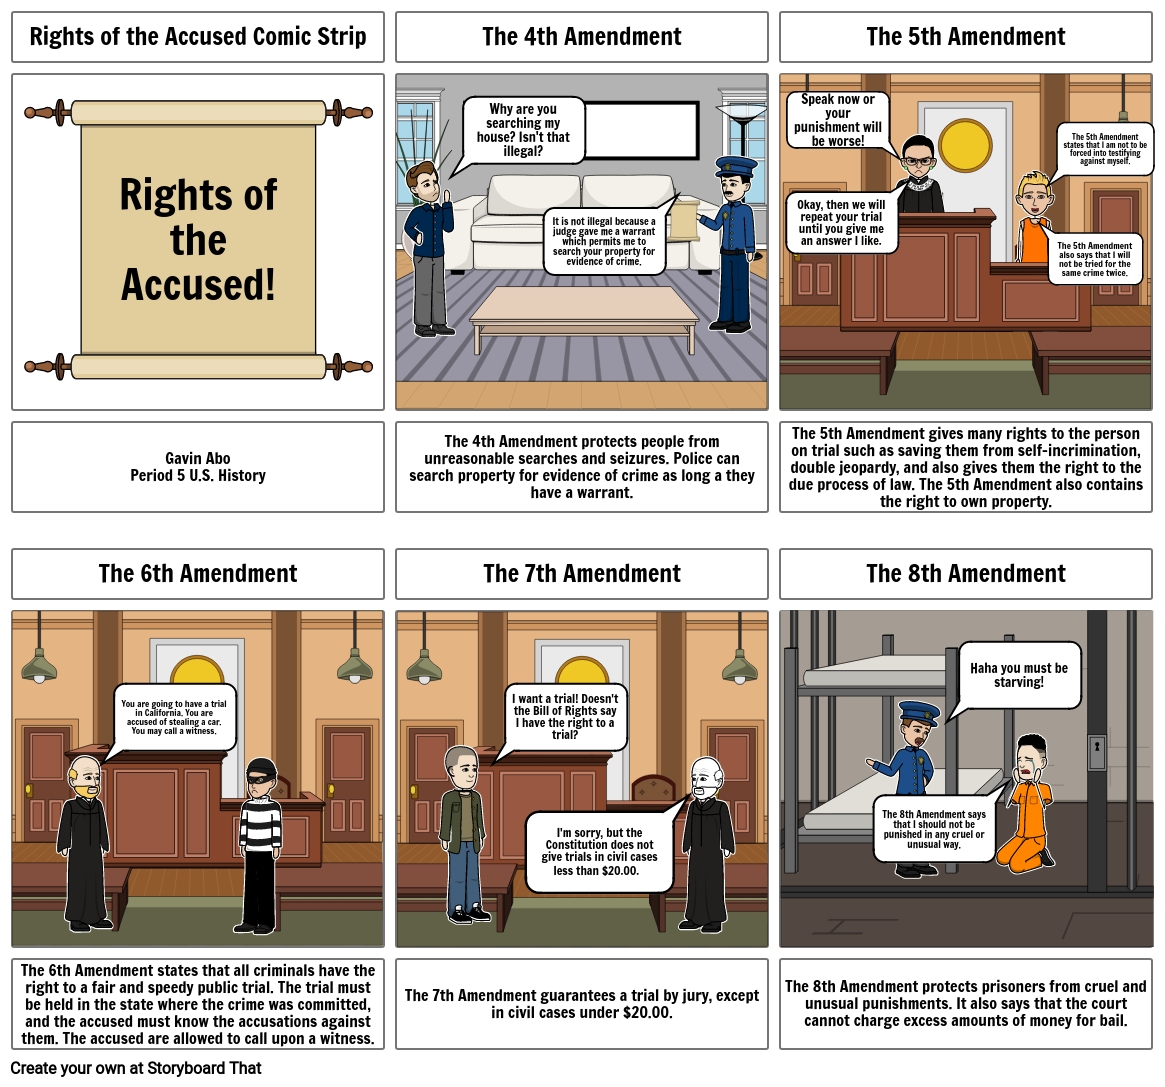 Rights of the Accused Comic Strip